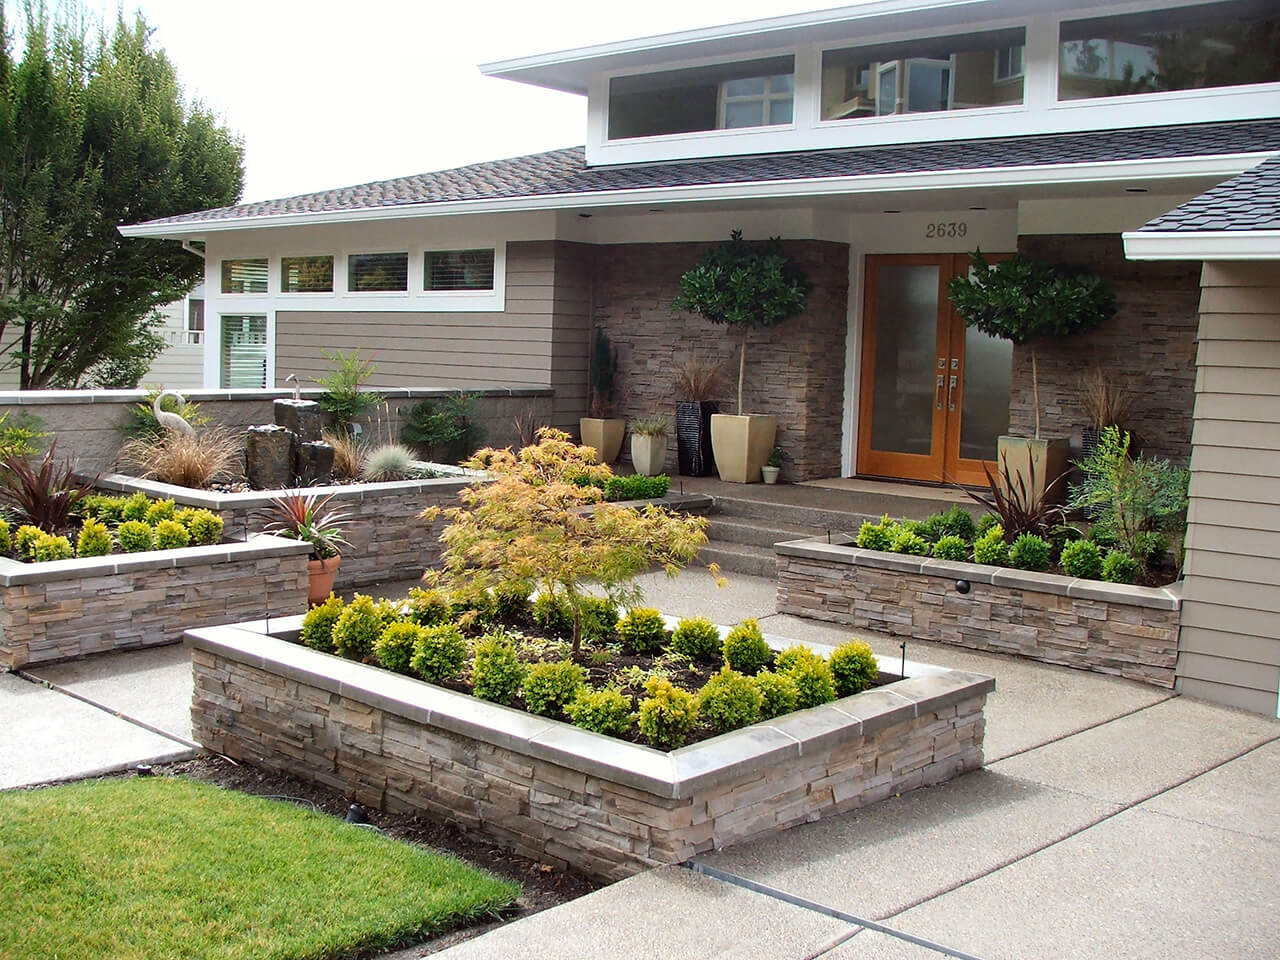 20 brilliant front garden landscaping ideas style motivation for Outdoor front yard landscaping